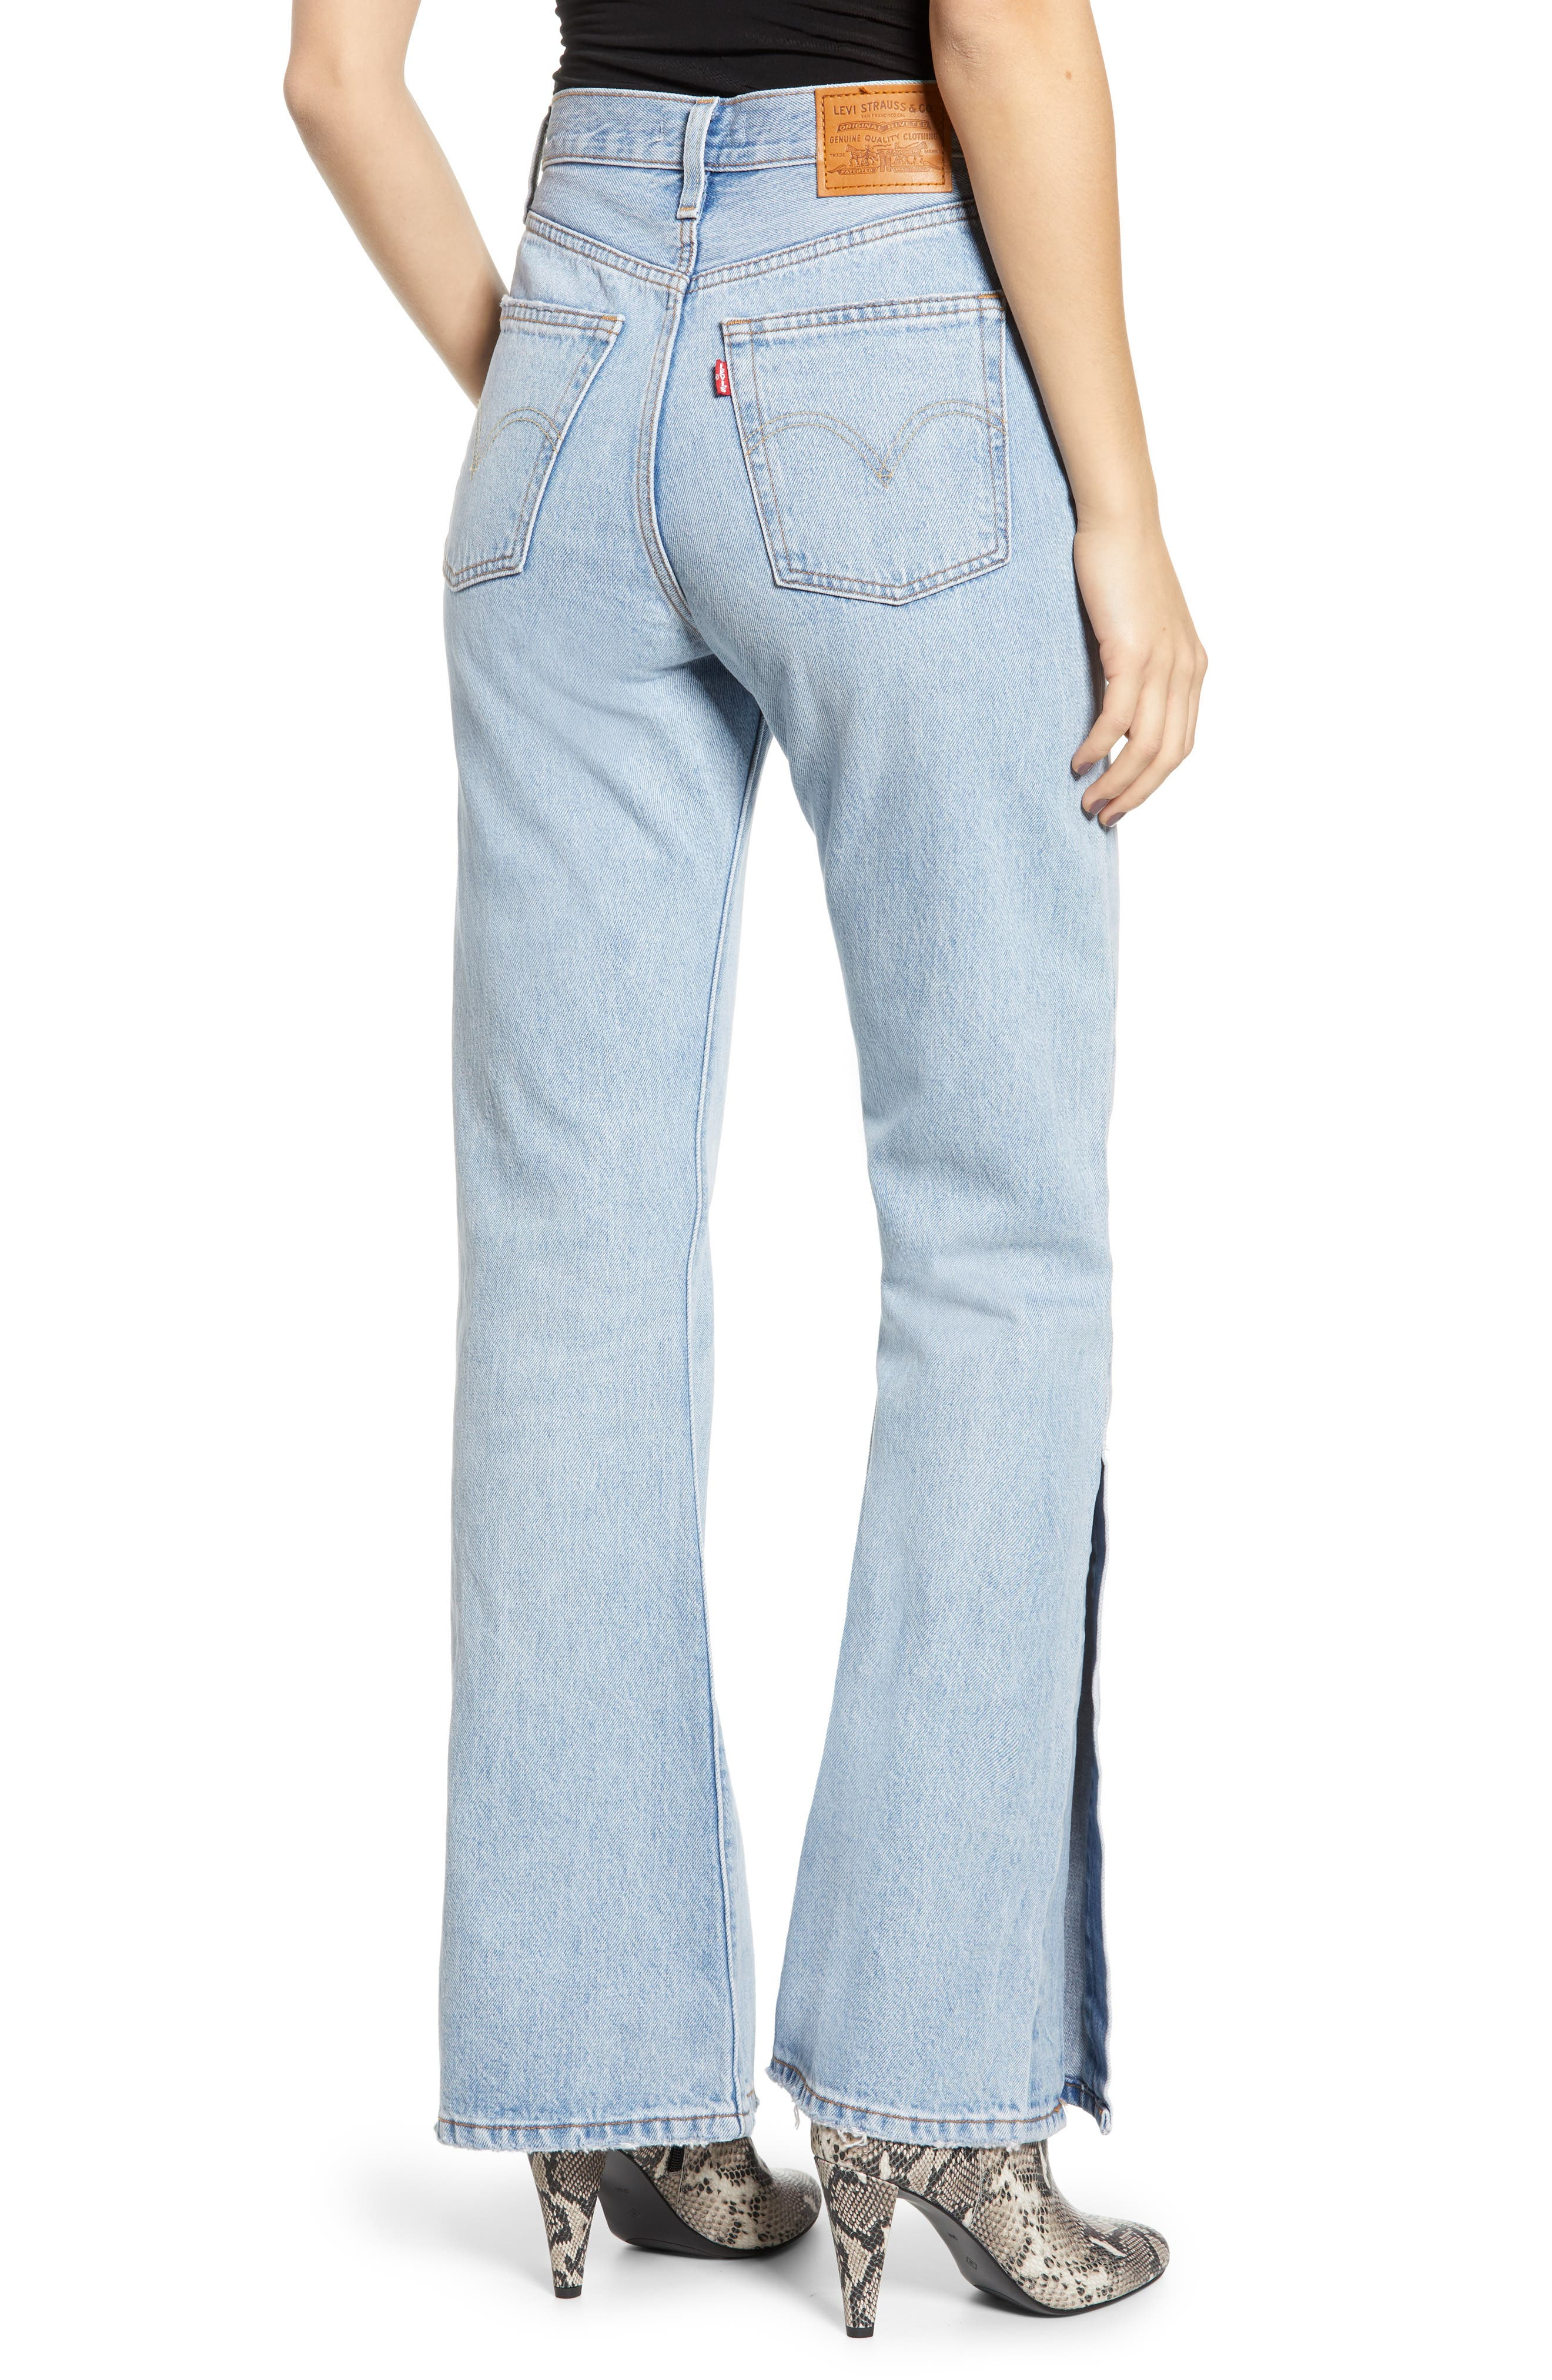 LEVI'S<SUP>®</SUP>, Ribcage Super High Waist Split Flare Jeans, Alternate thumbnail 2, color, DAZED AND CONFUSED